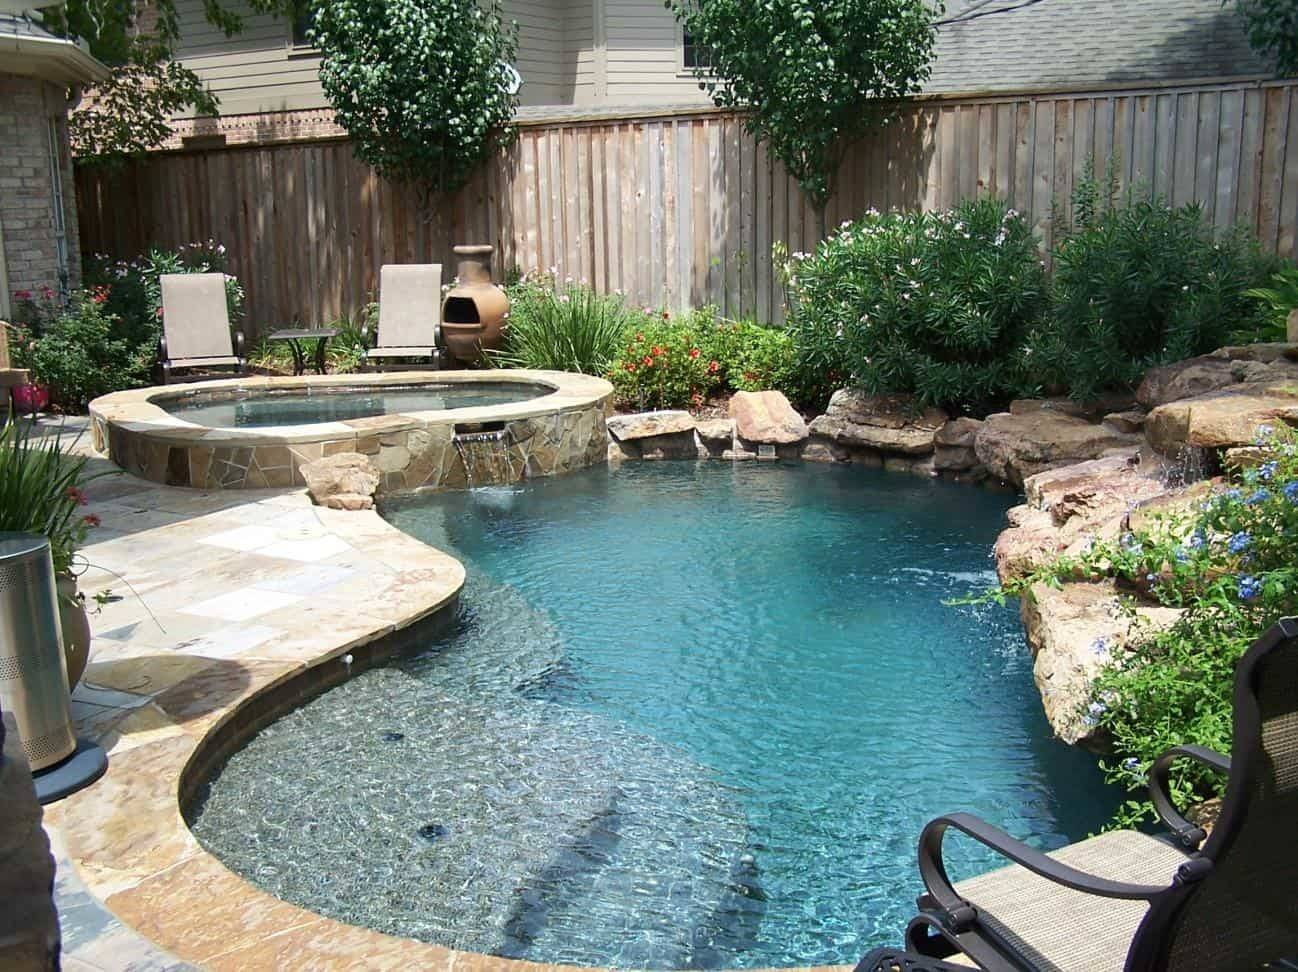 Lagoon Style Pool Design – Pool builder and Landscape company